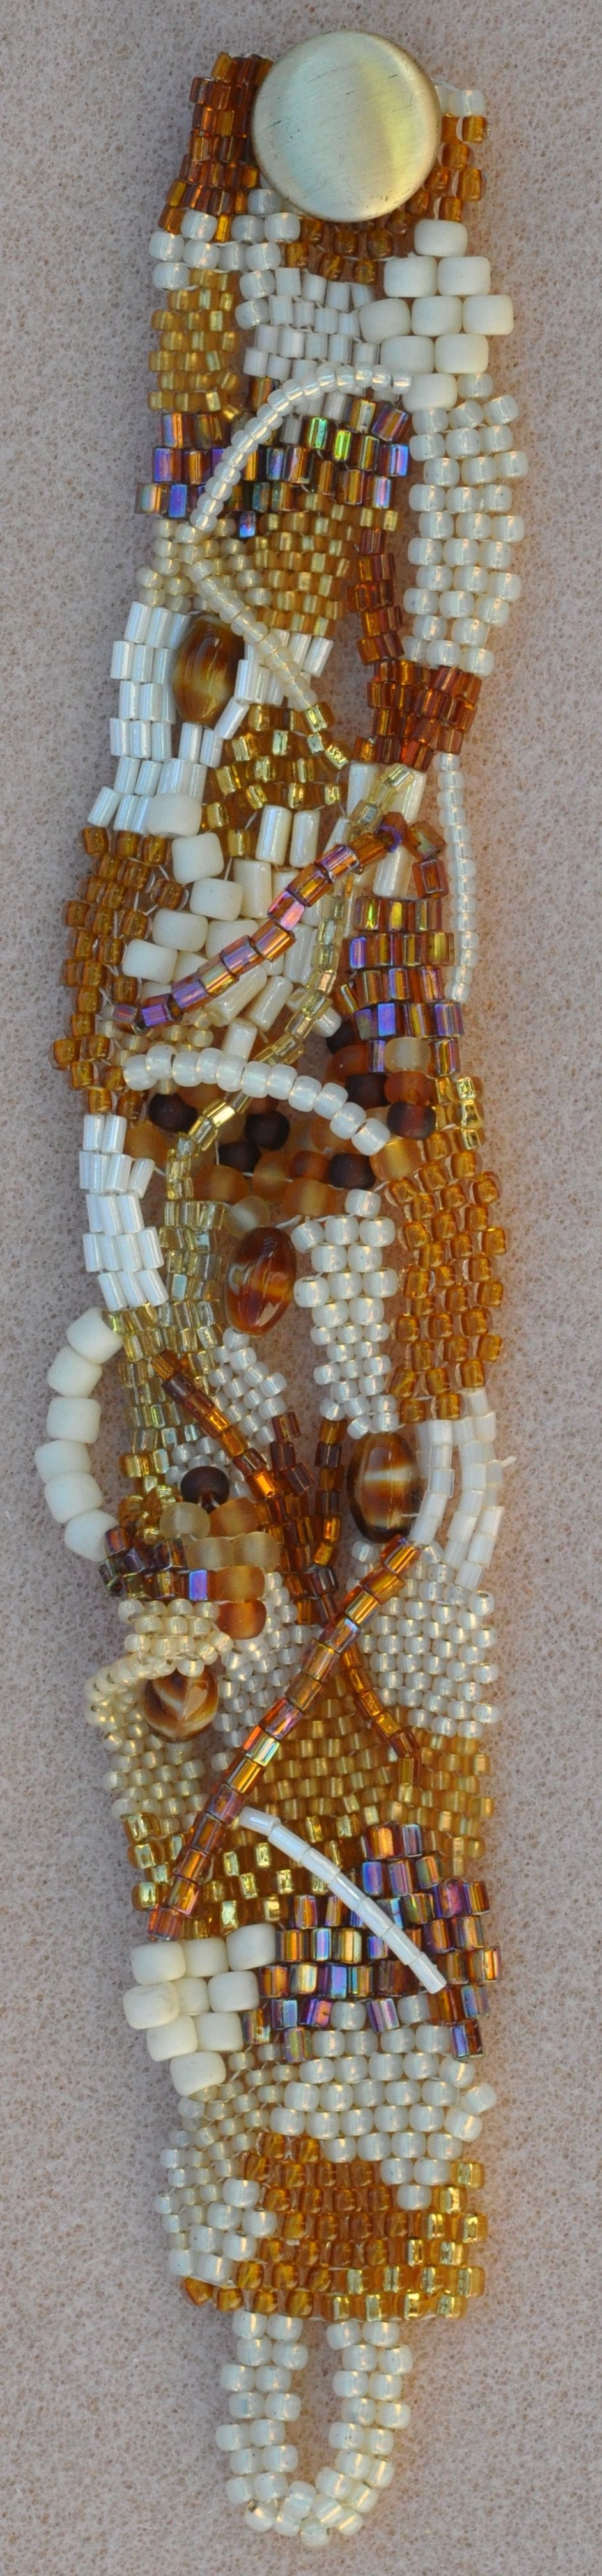 Hand Made Biege Freeform Peyote Beaded Bracelet